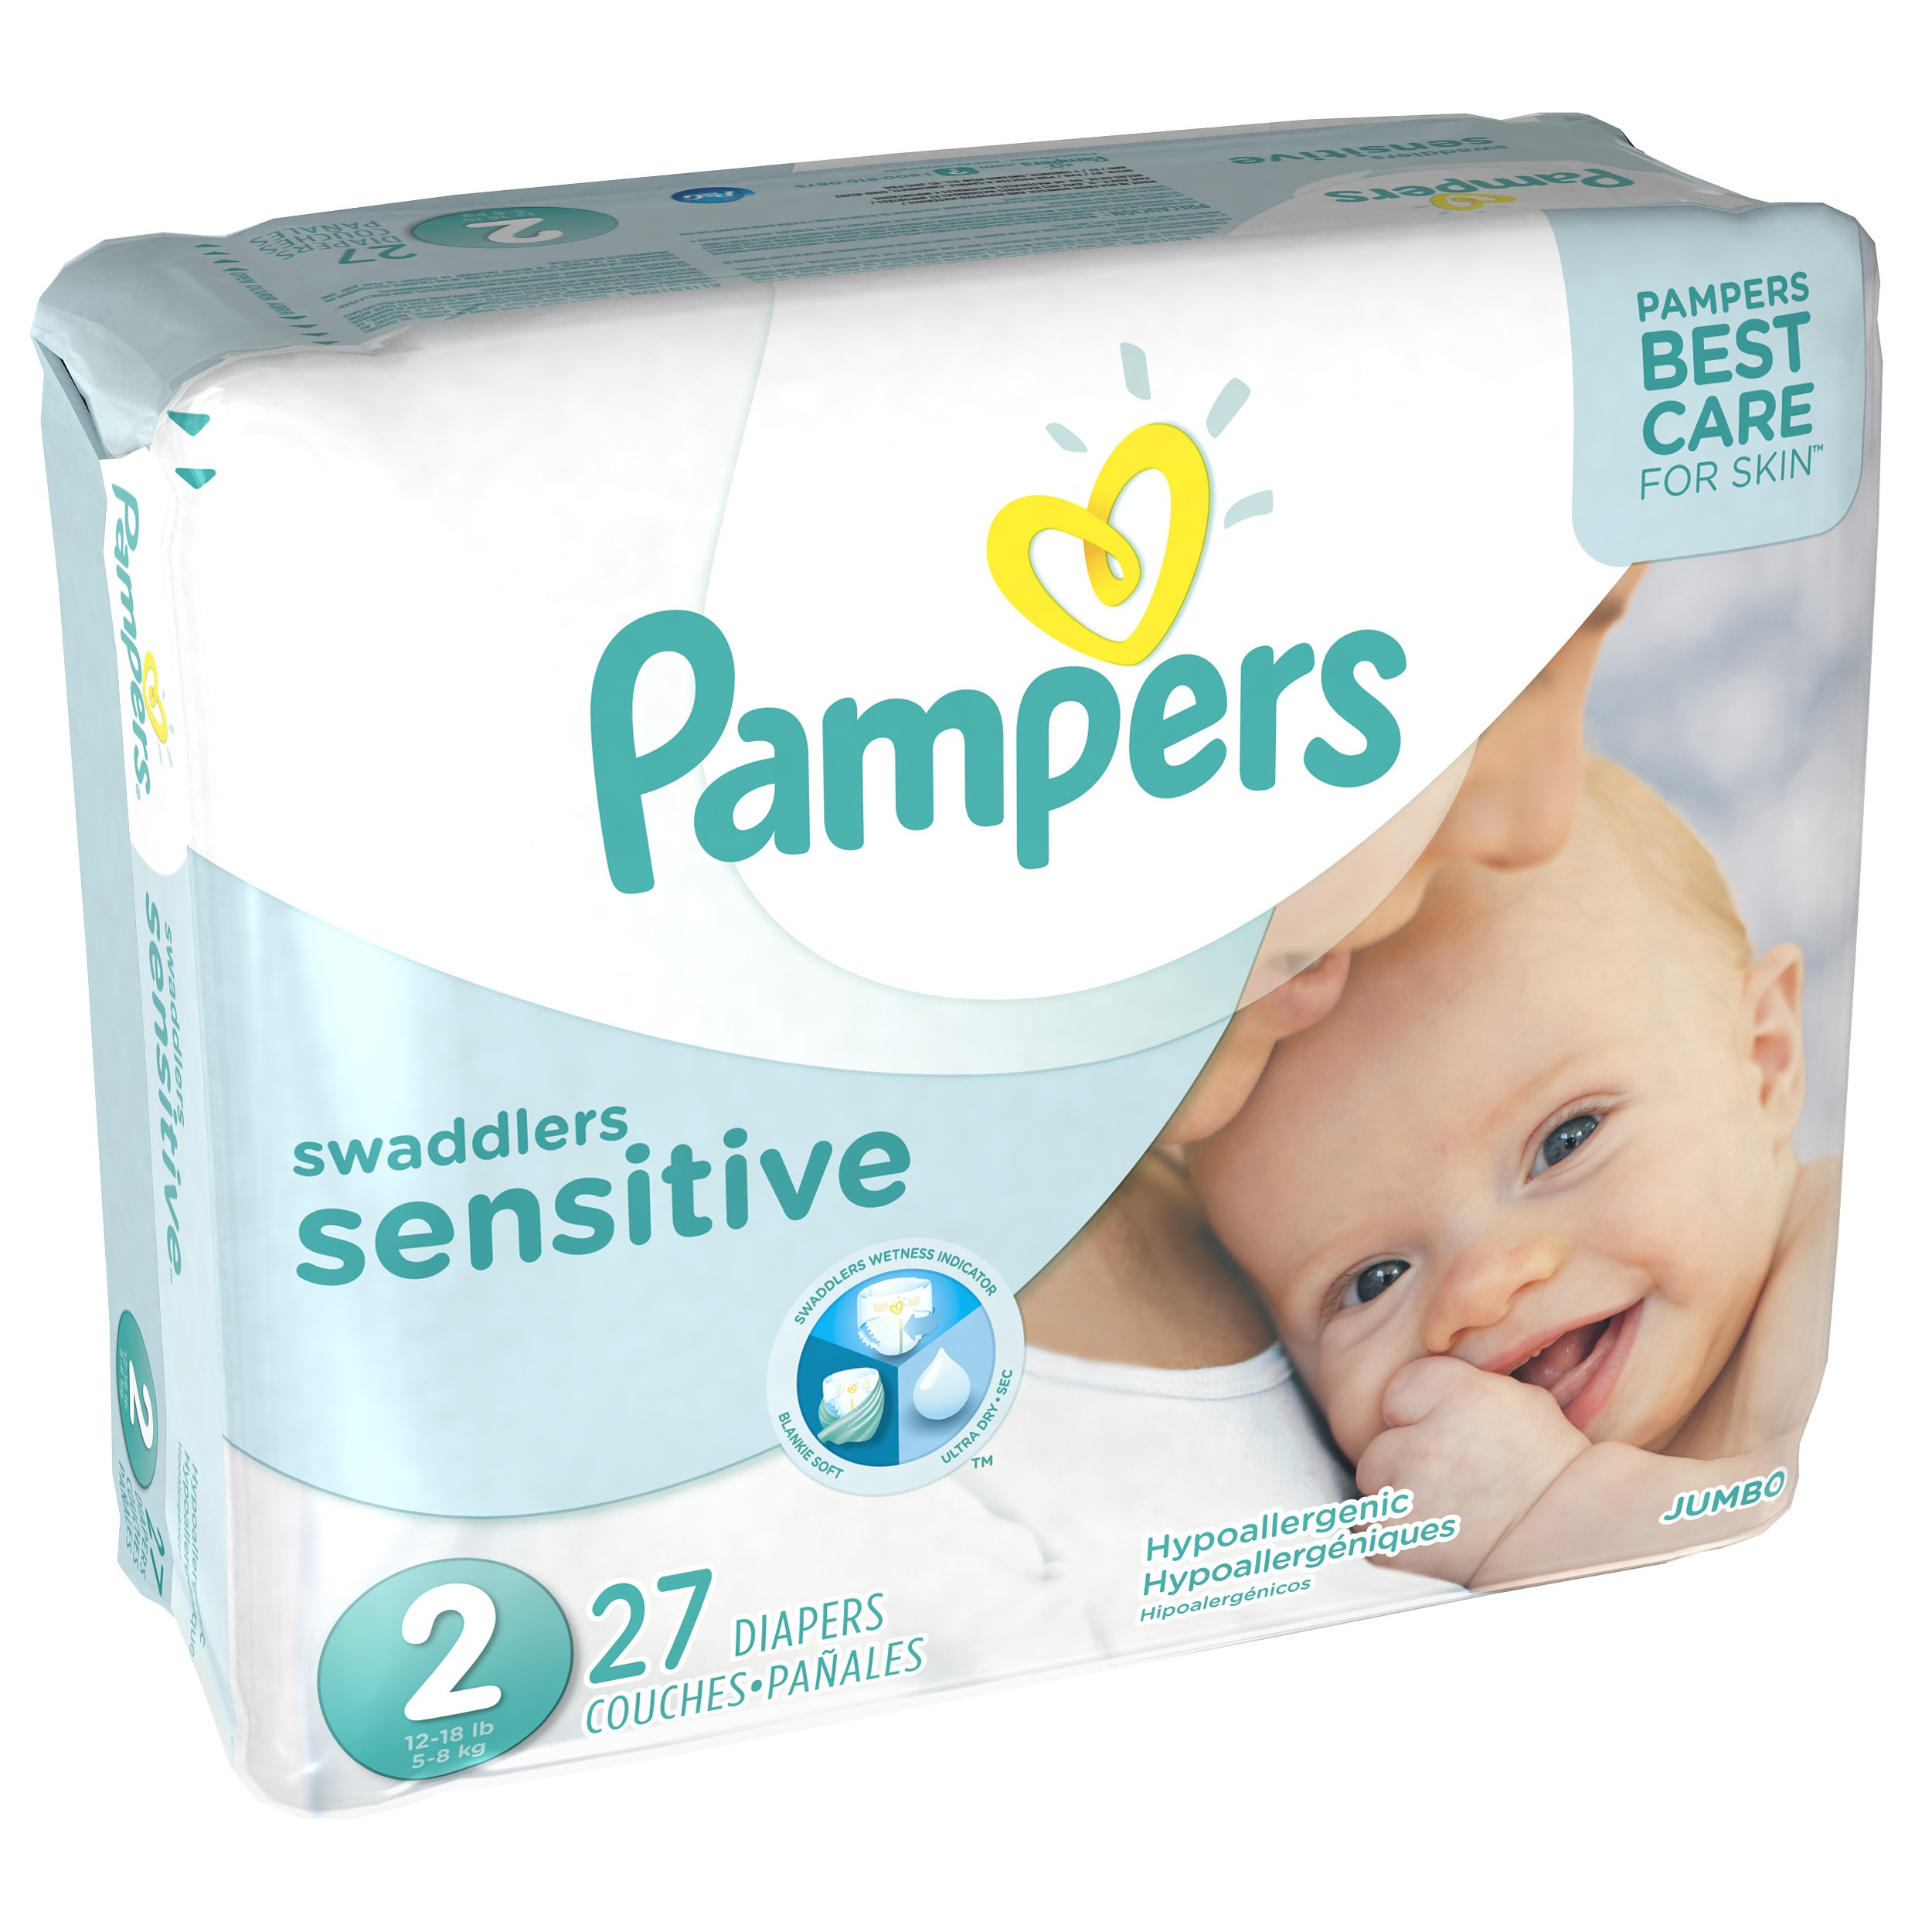 Pampers Swaddlers Sensitive Diapers Size 2 76 count by Pampers